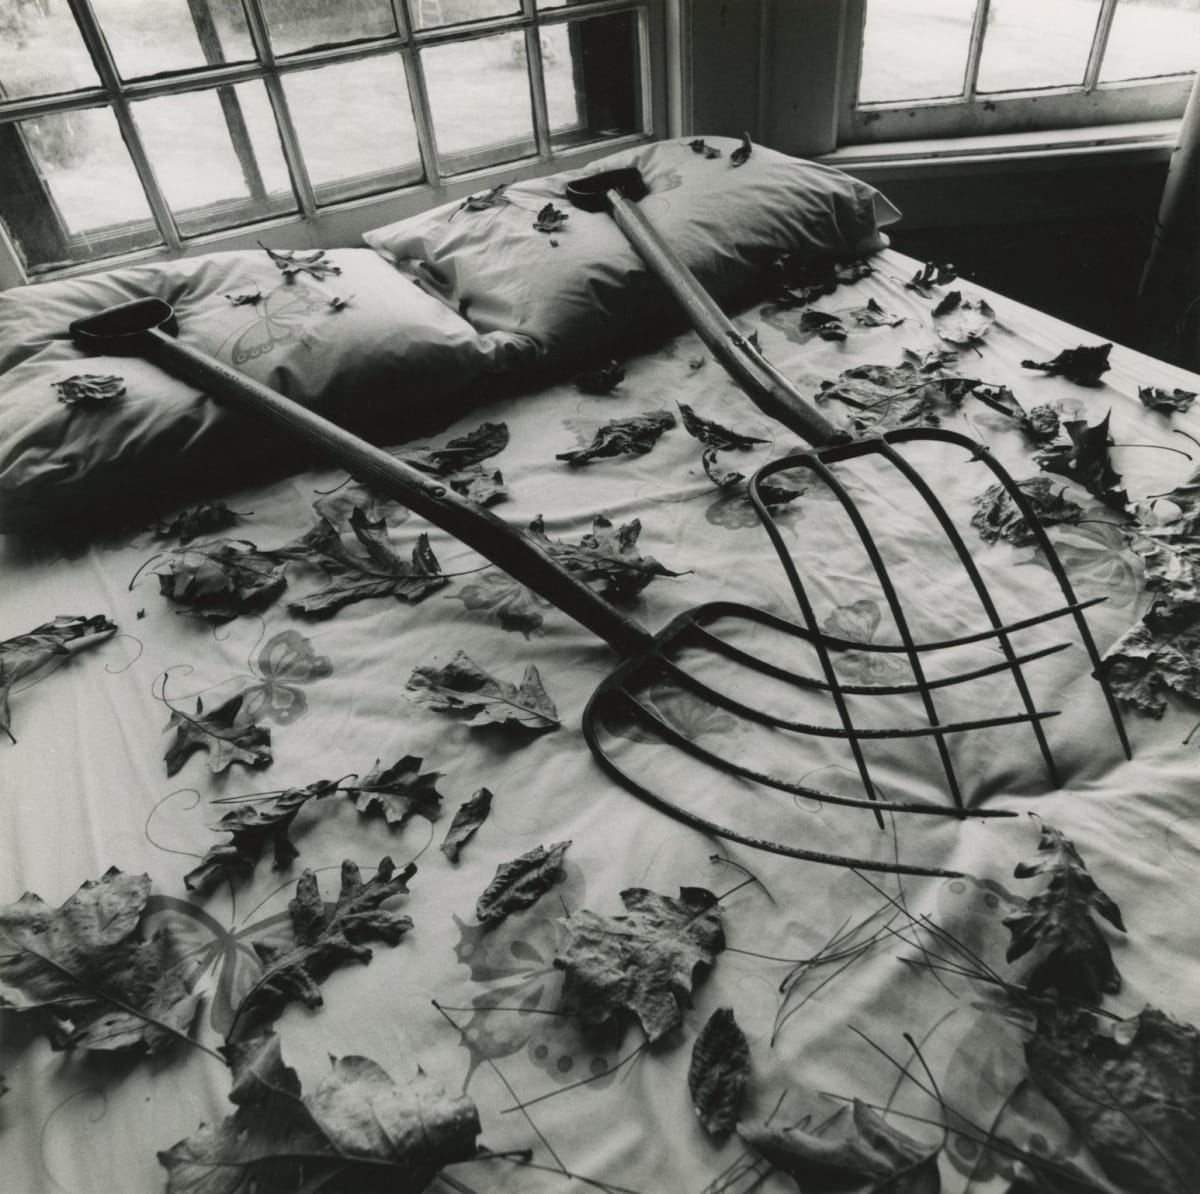 Arthur Tress, Making Leaves, Cold Spring, NY, 1978